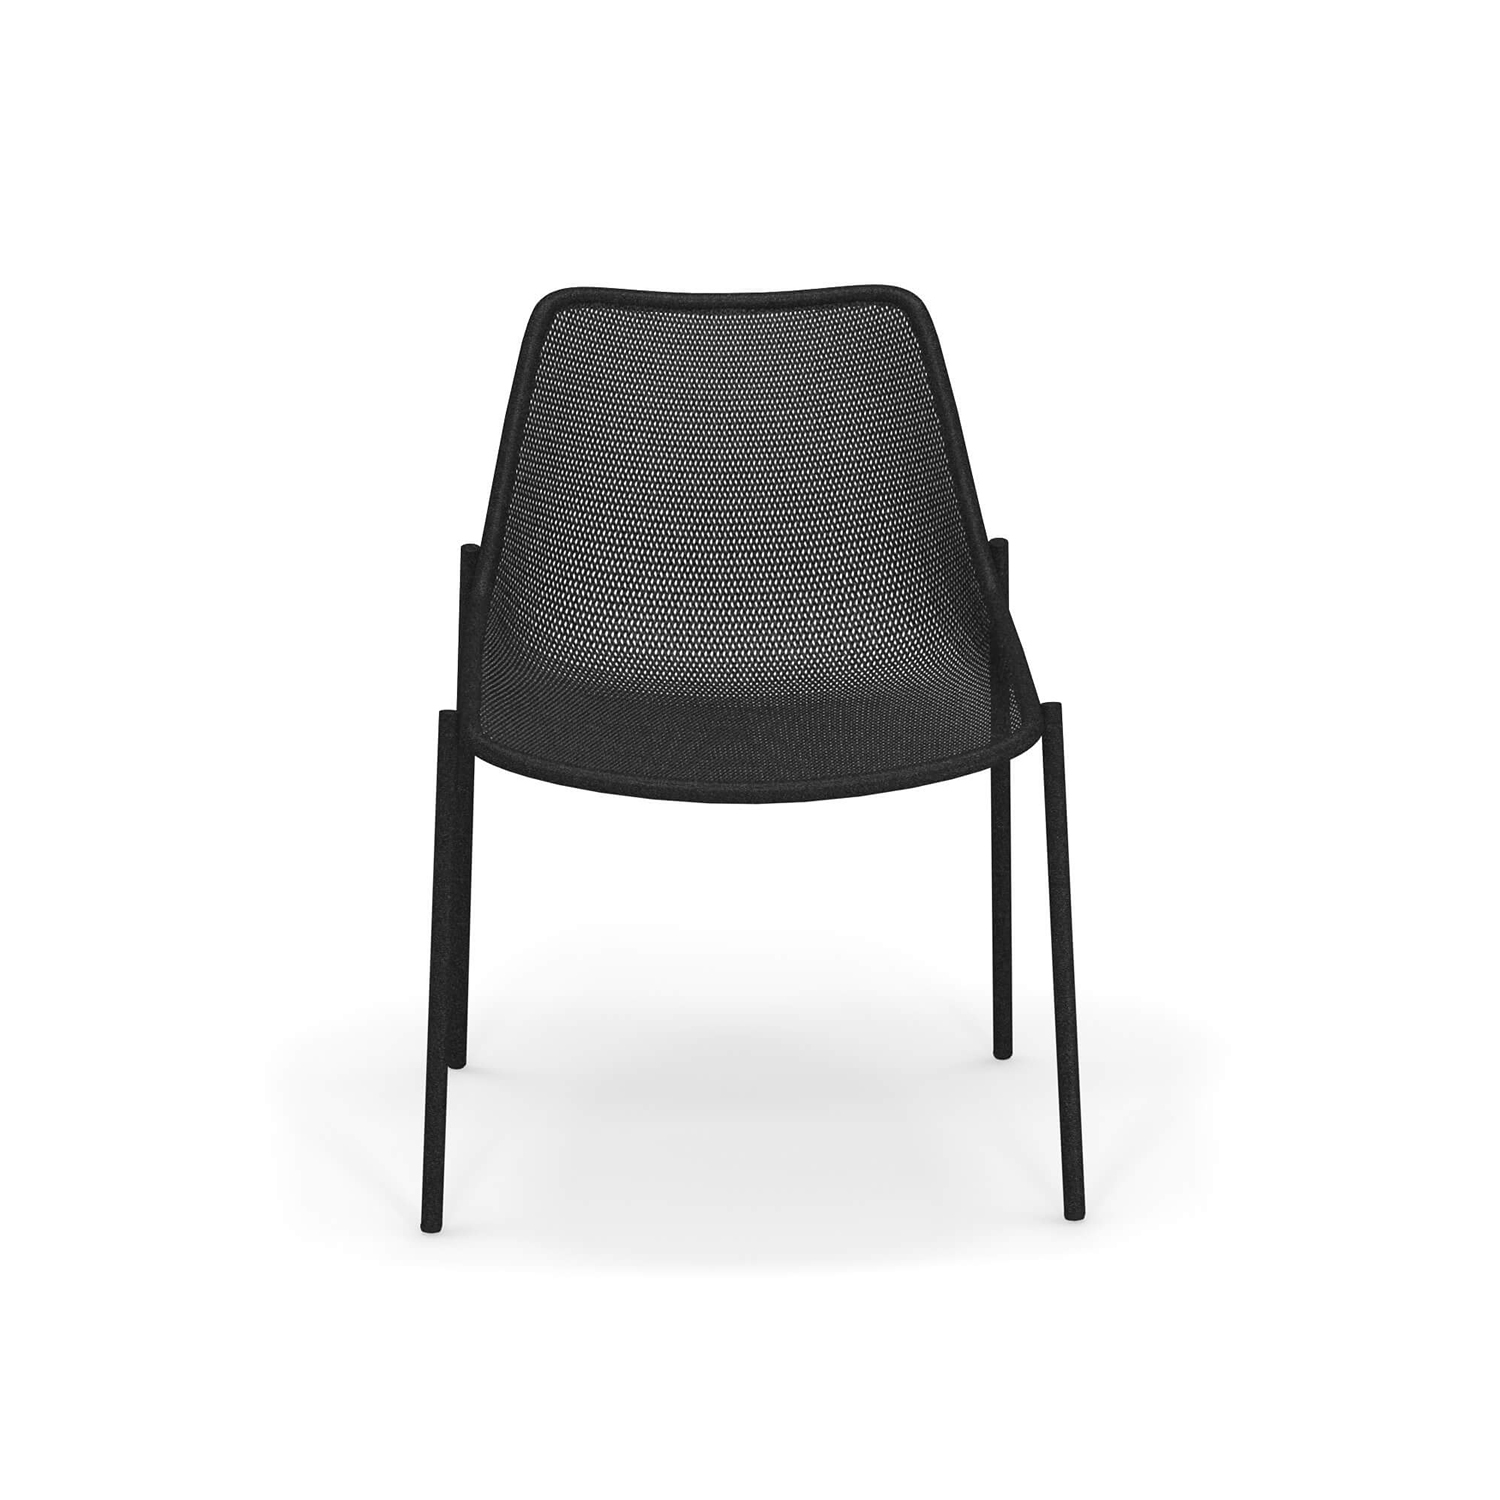 Round Dining Chair - Set of 4 - With its sleek design and option of four finishes this steel chair fits into most outdoor spaces. It is stackable so is easily stored during winter months and comes in a set of four.   Round is a collection defined by its search for structural balance and soft lines, an interpretation of outdoor space that conveys stylistic but essential refinement. Clean and basic shapes mark the range elements that make up this collection.</p>  | Matter of Stuff